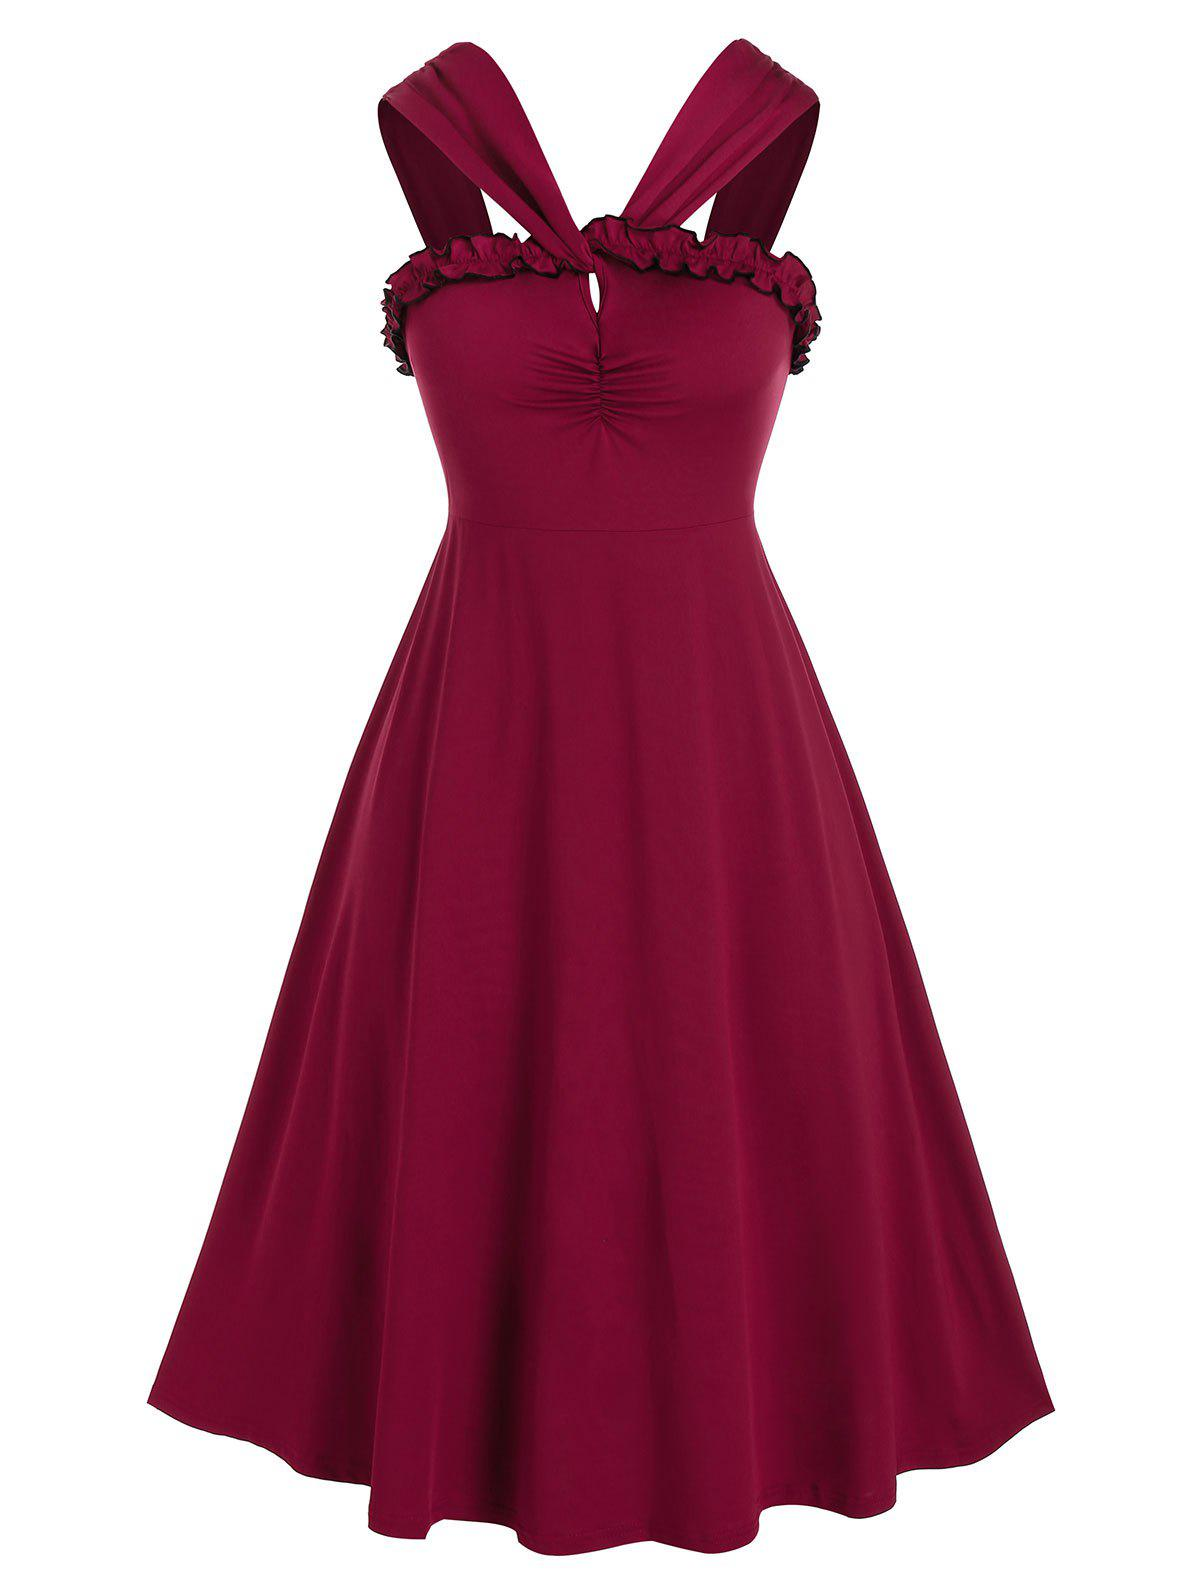 Plus Size Frilled Ruched A Line Midi Retro Dress - RED WINE 5X